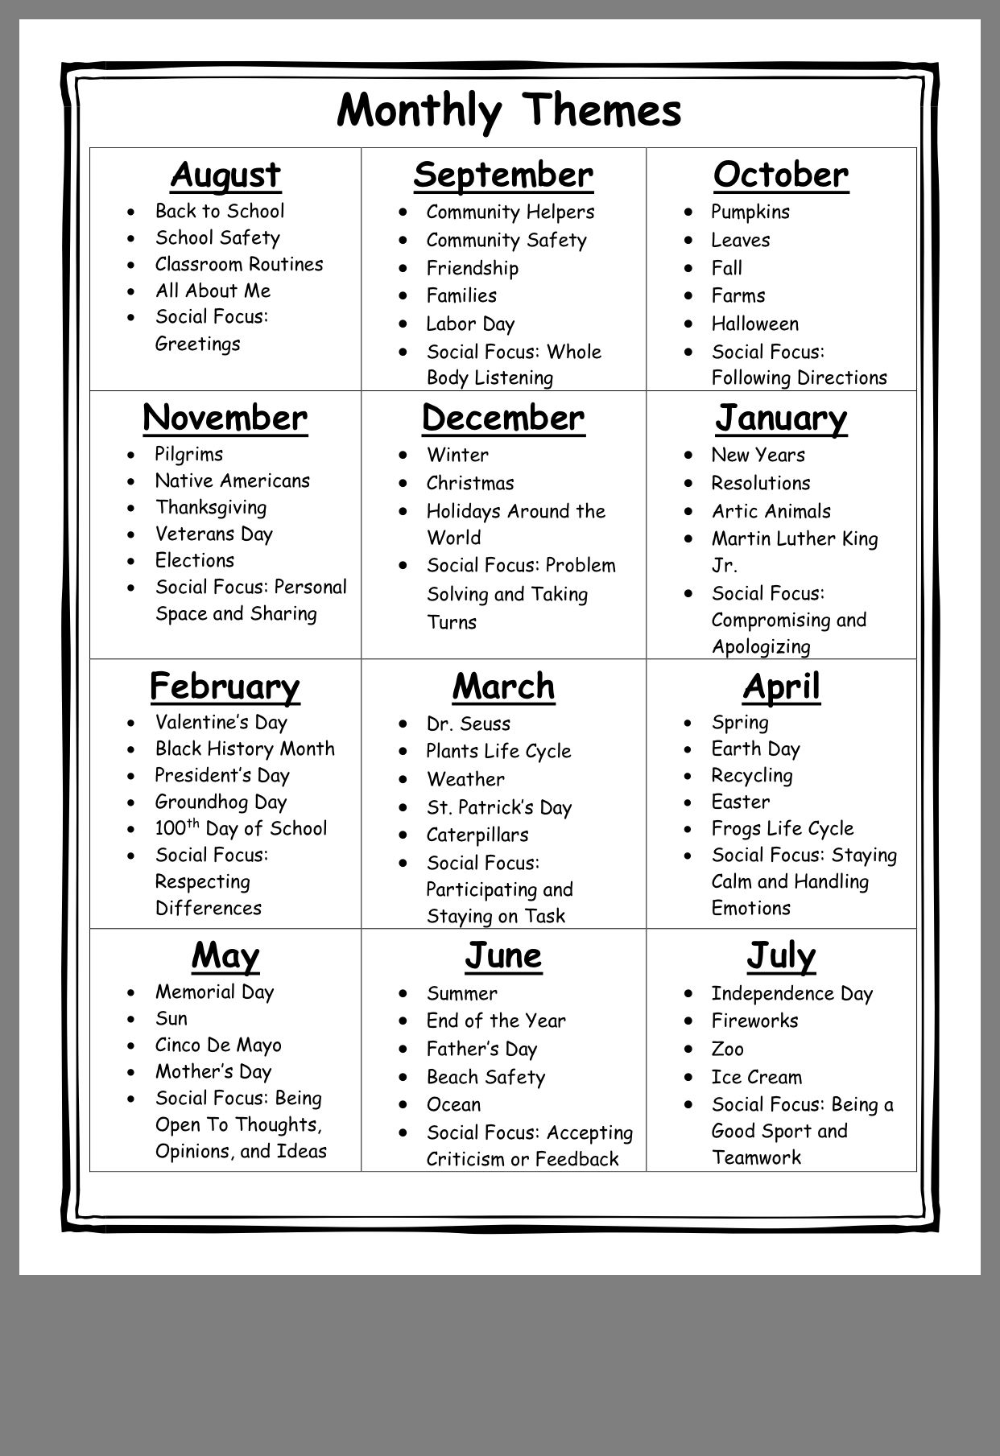 20 Daycare Monthly themes ideas in 20   preschool lessons ...